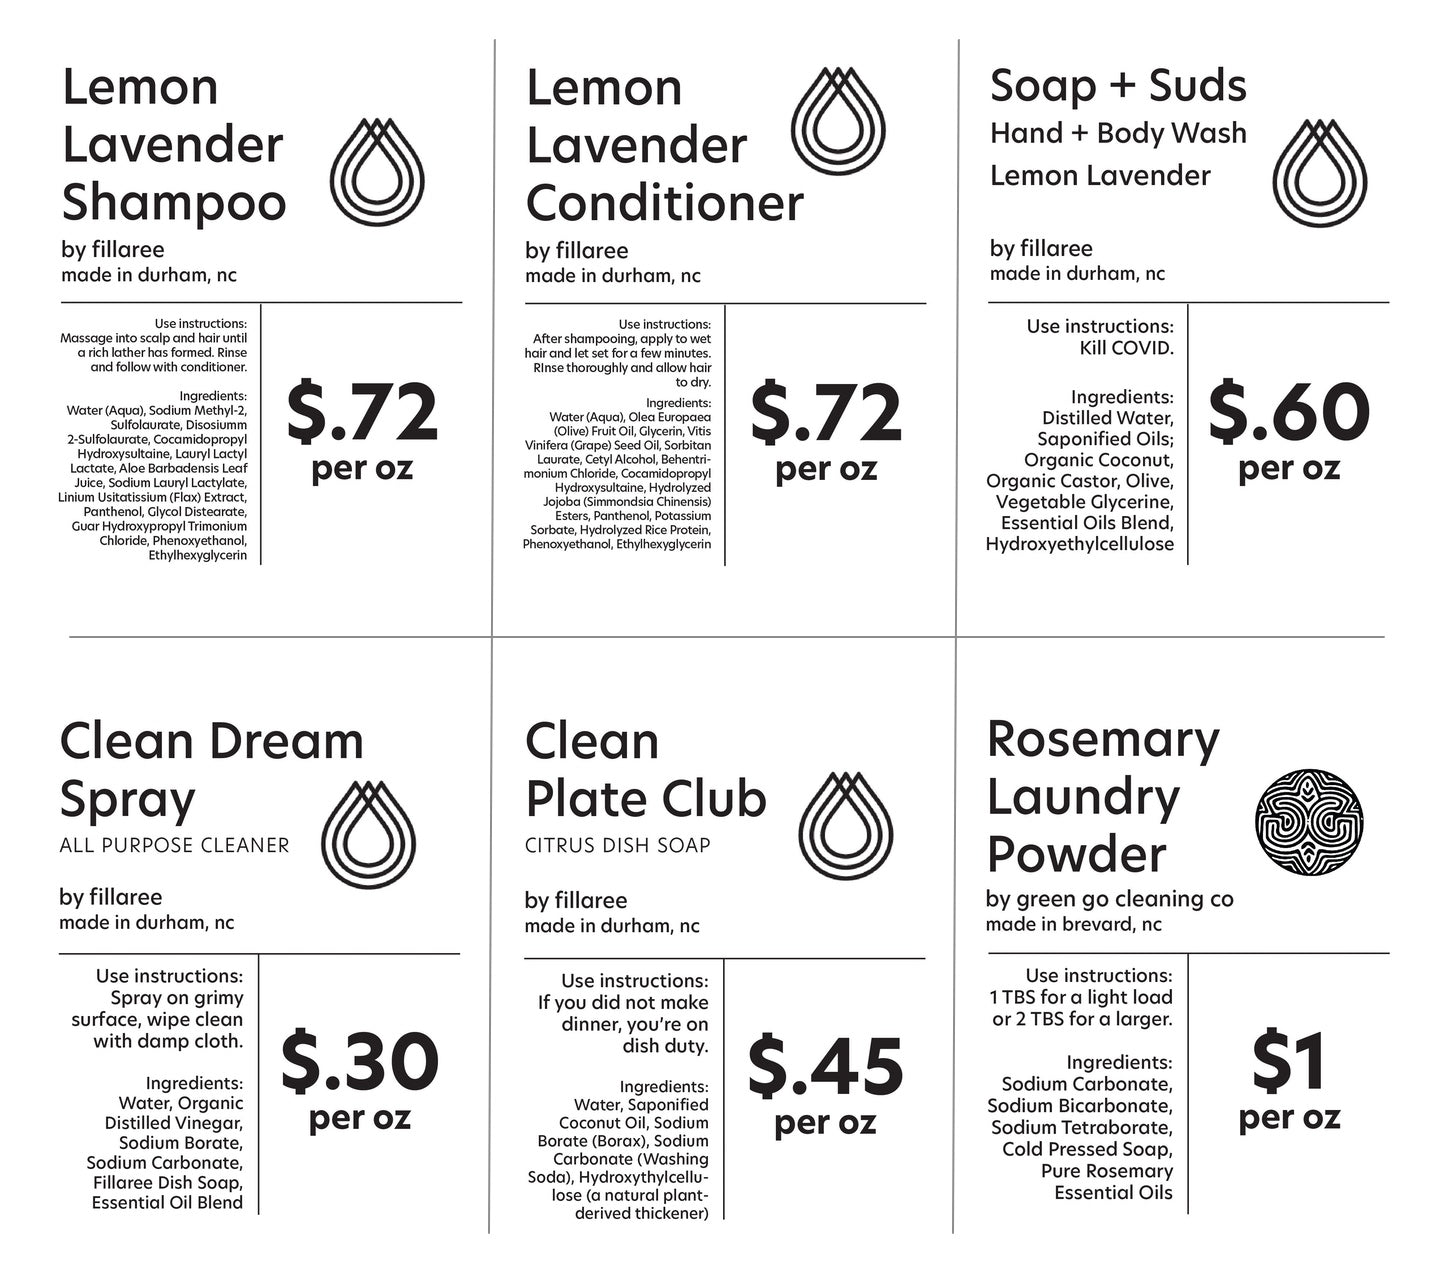 Bulk Refill Natural Shampoo, Conditioner, Body Wash, Laundry Powder, Dish Soap, and All-purpose Cleaner